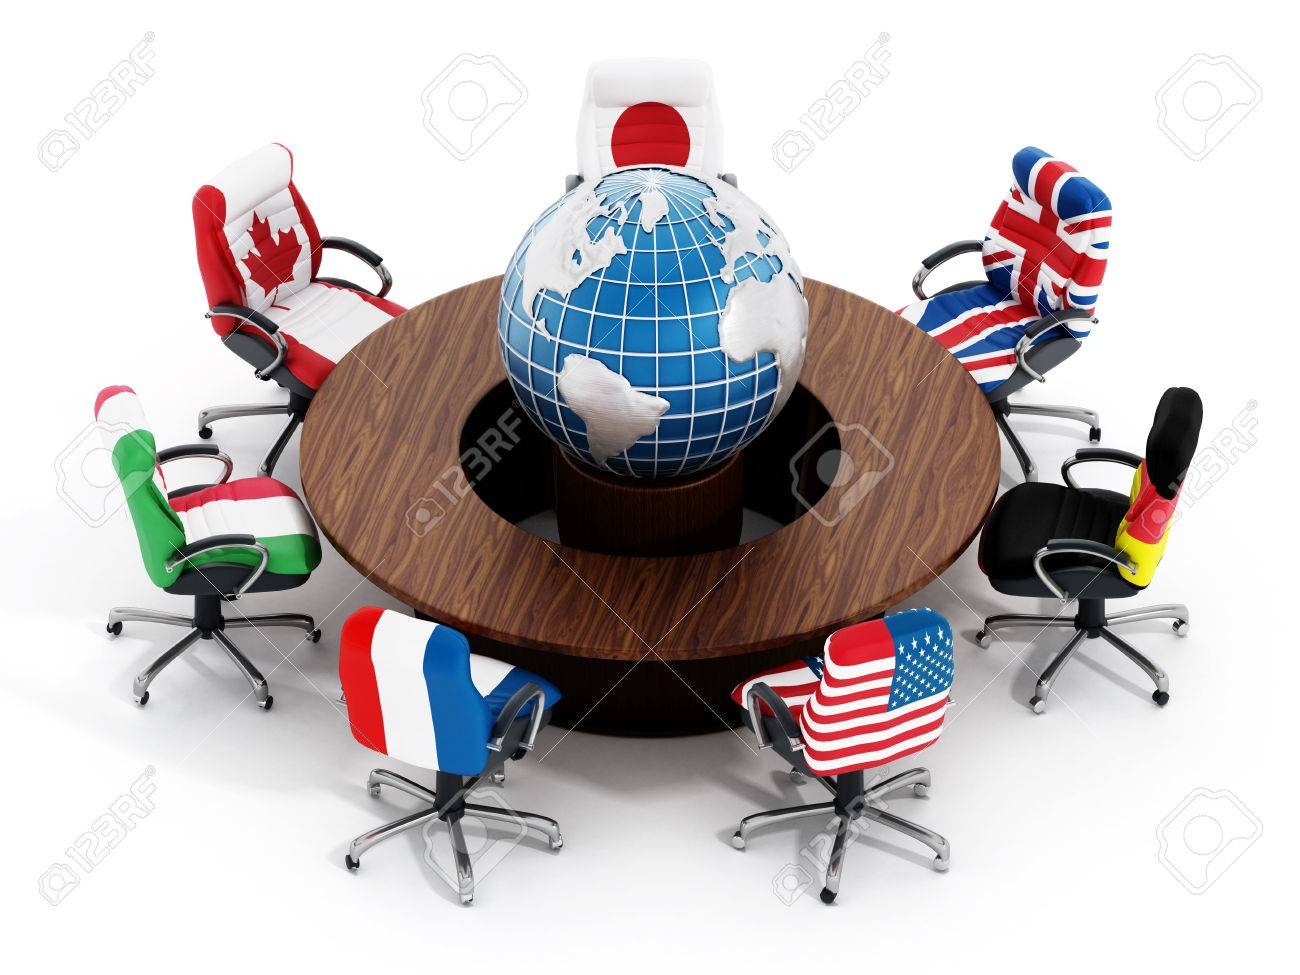 globe office chairs. G7 Country Flags On Office Chairs Around Table Wth Globe Isolated White Background Stock Photo S